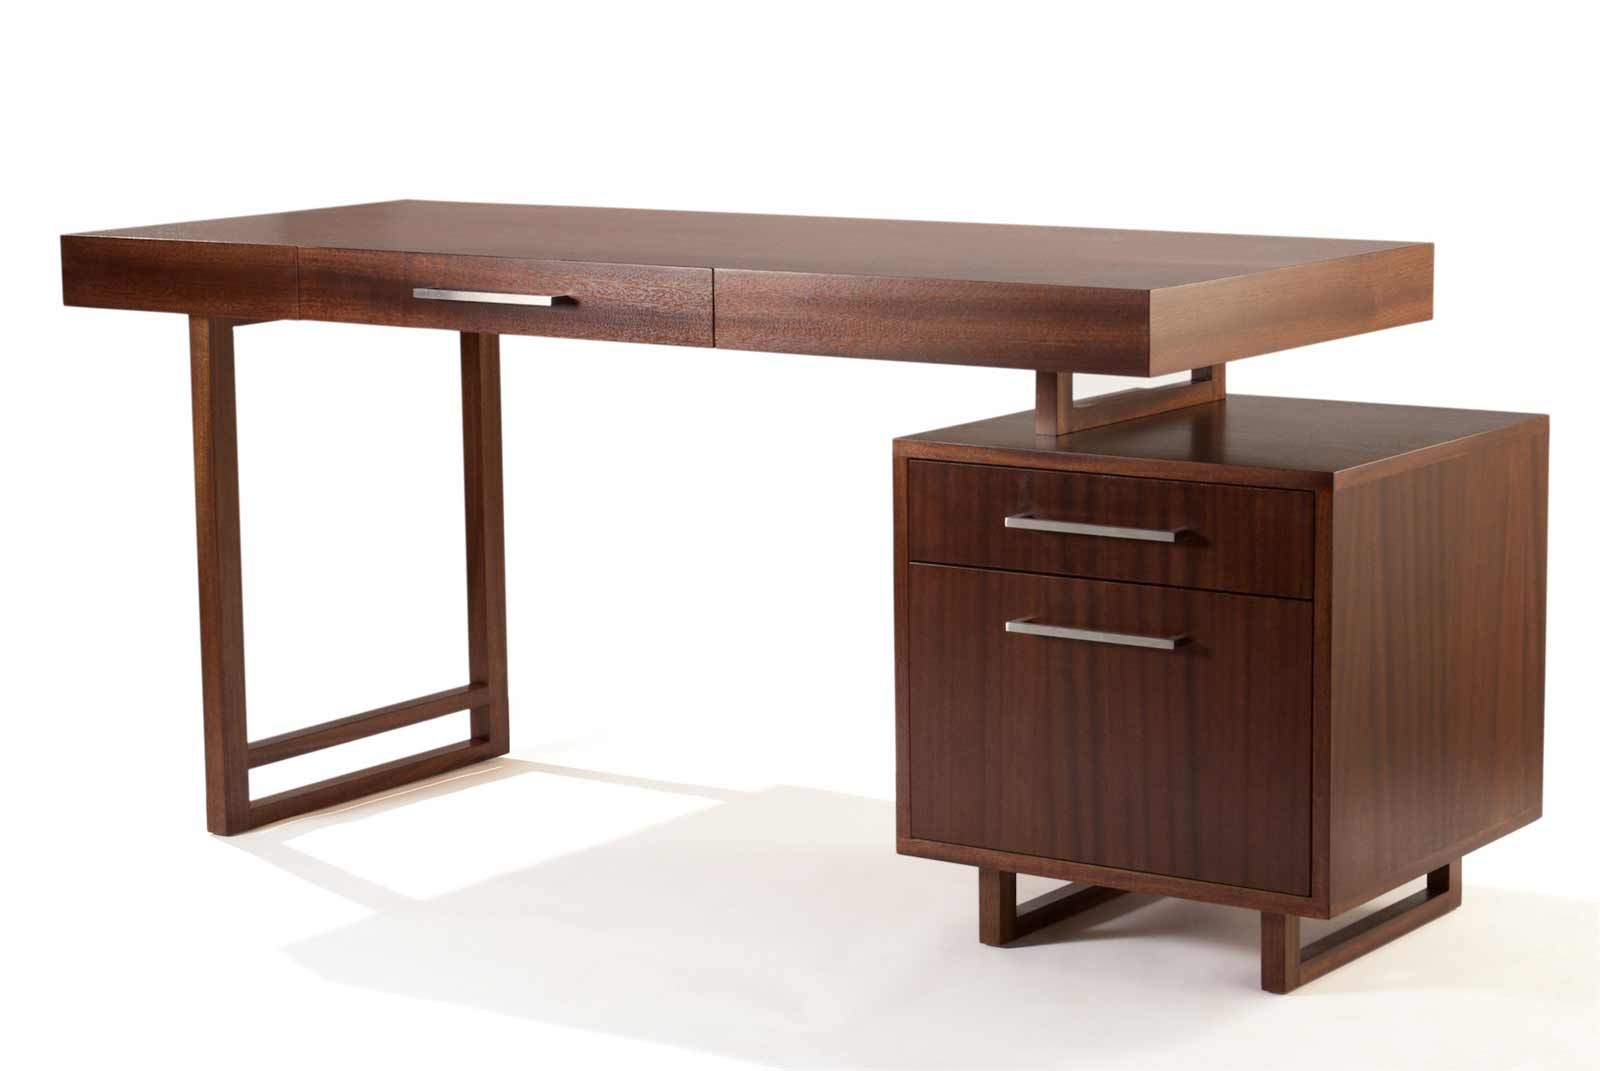 20 Modern Desk Ideas For Your Home Office